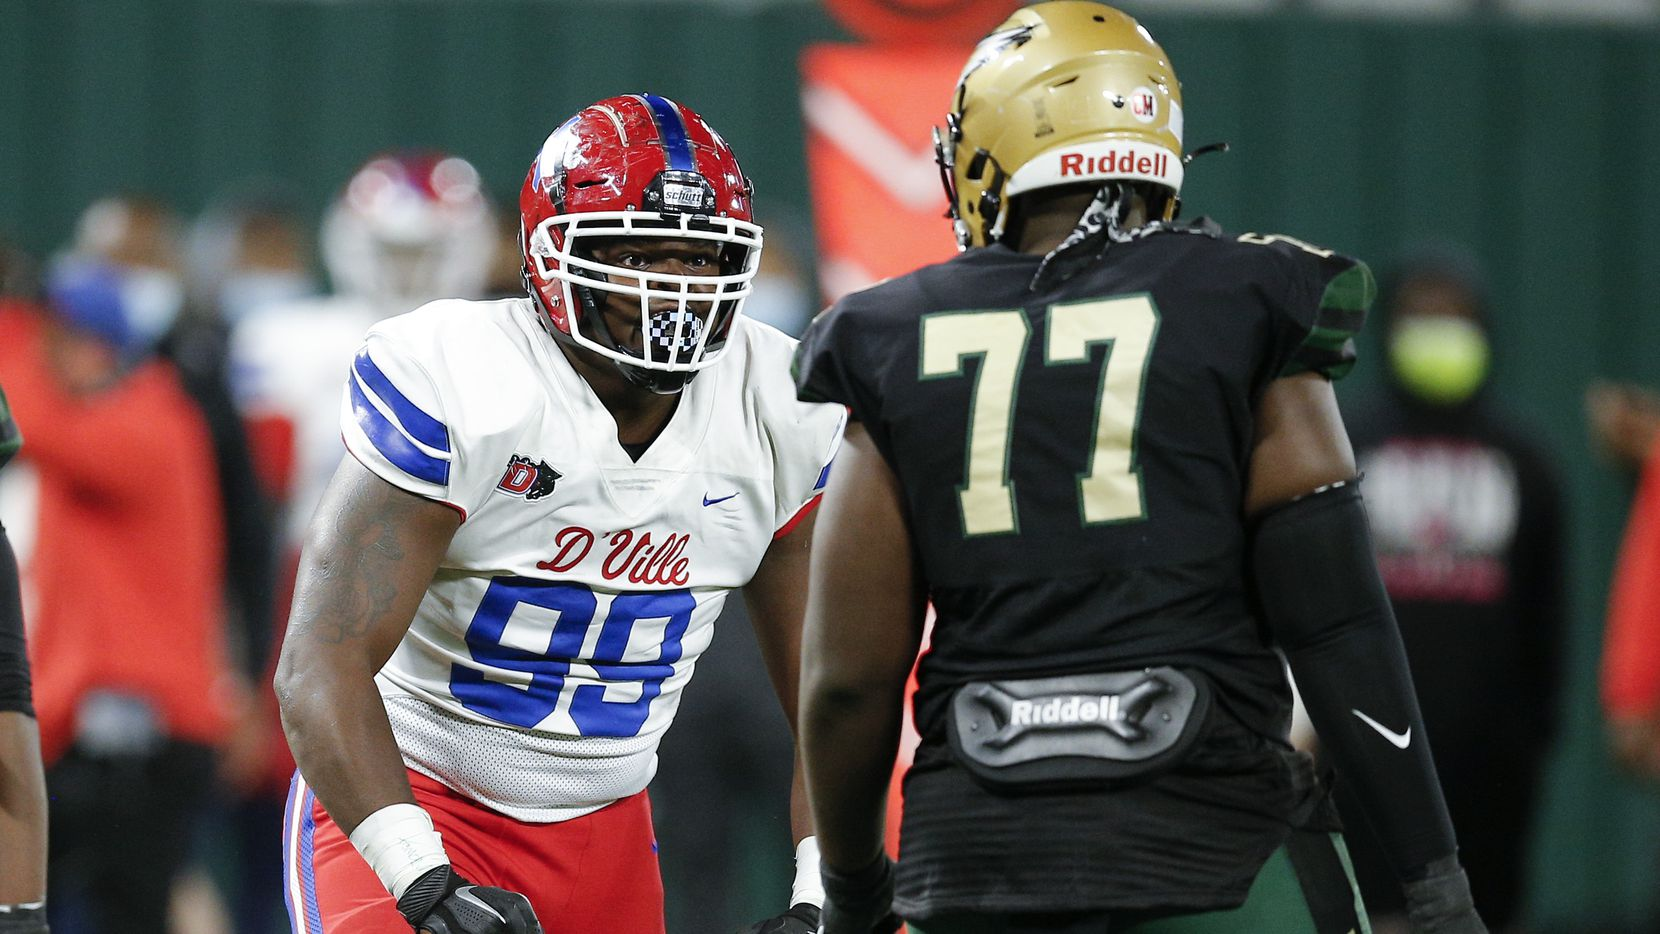 DeSoto junior guard Joshua Straw (77) looks on as Duncanville junior defensive tackle Quincy Wright (99) celebrates a sack during the first half of a Class 6A Division I Region II final high school football game, Saturday, January 2, 2021.